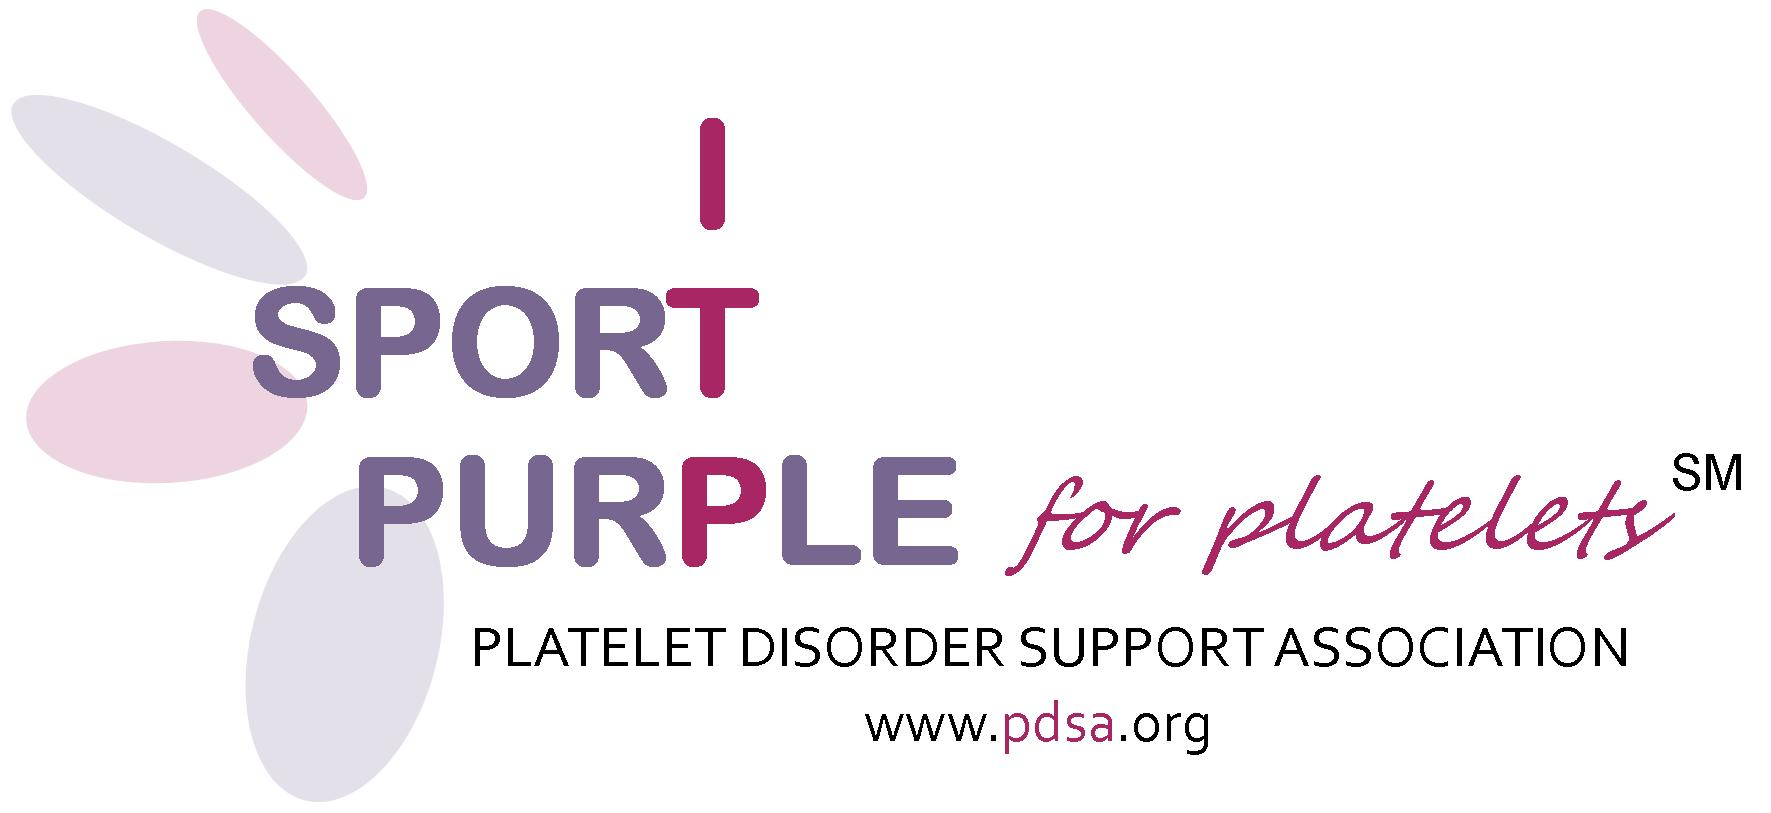 Sport Purple for Platelets Day